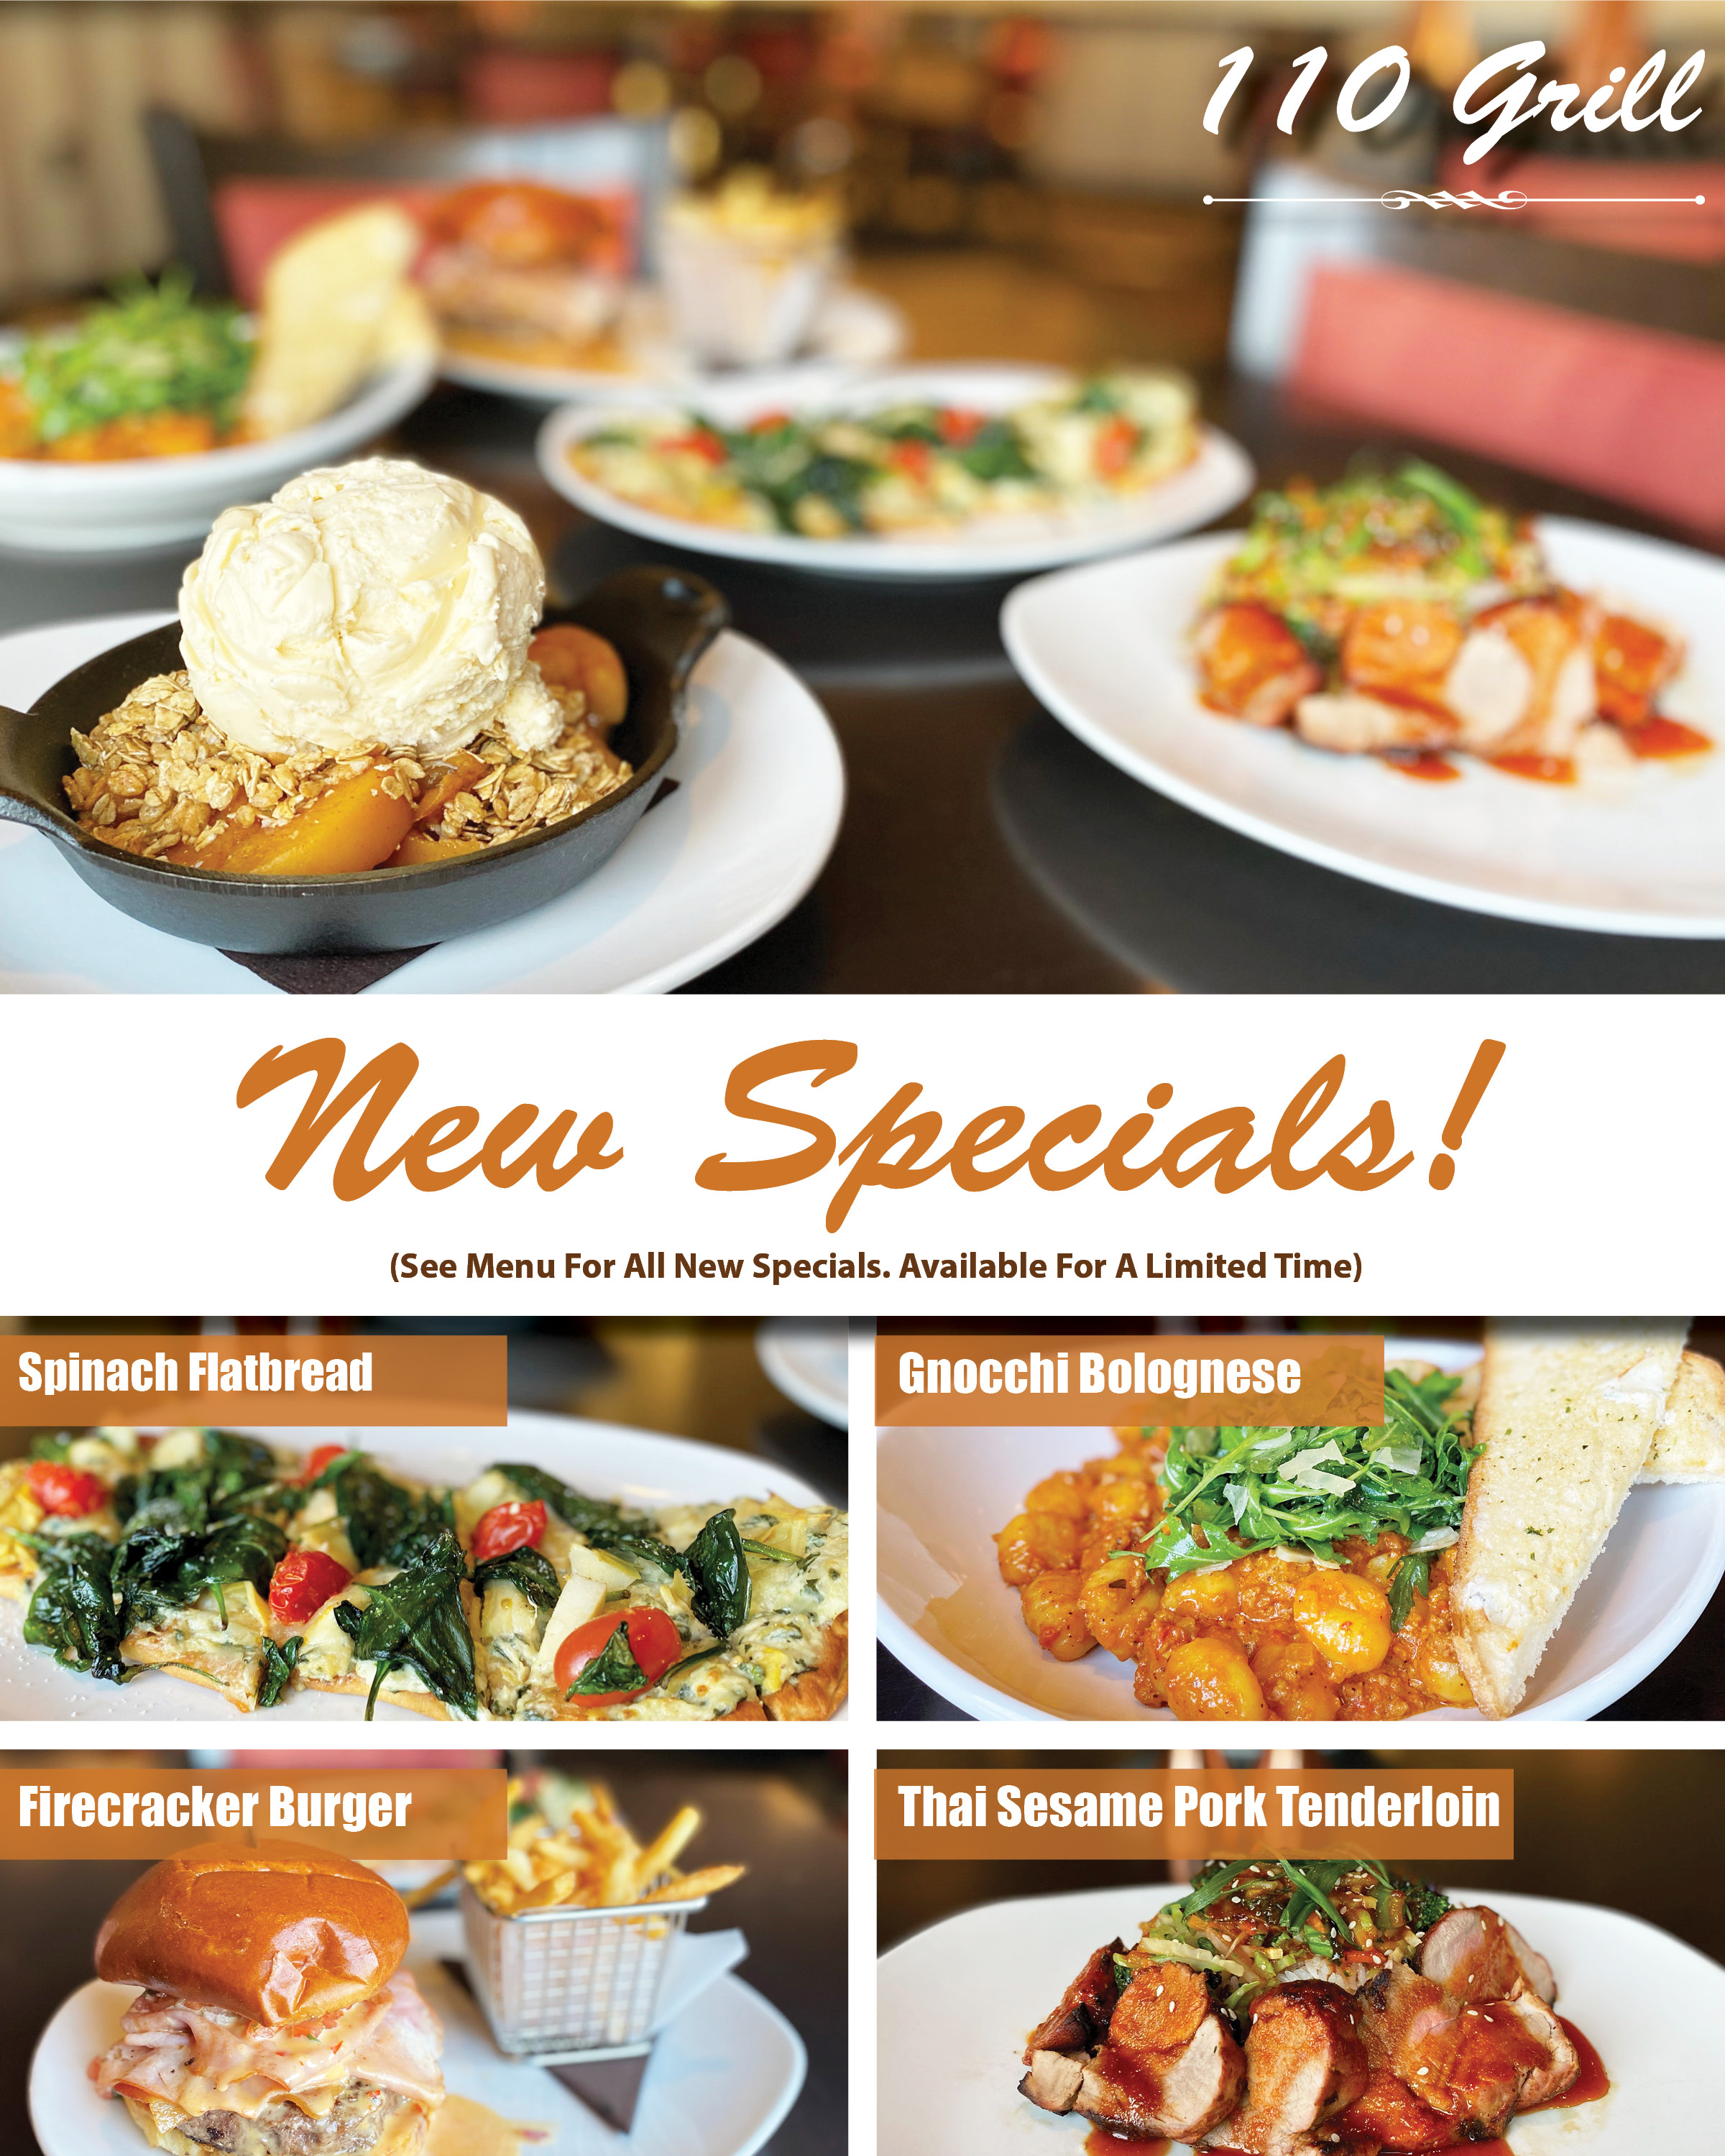 110 Grill winter 2020 new specials 2